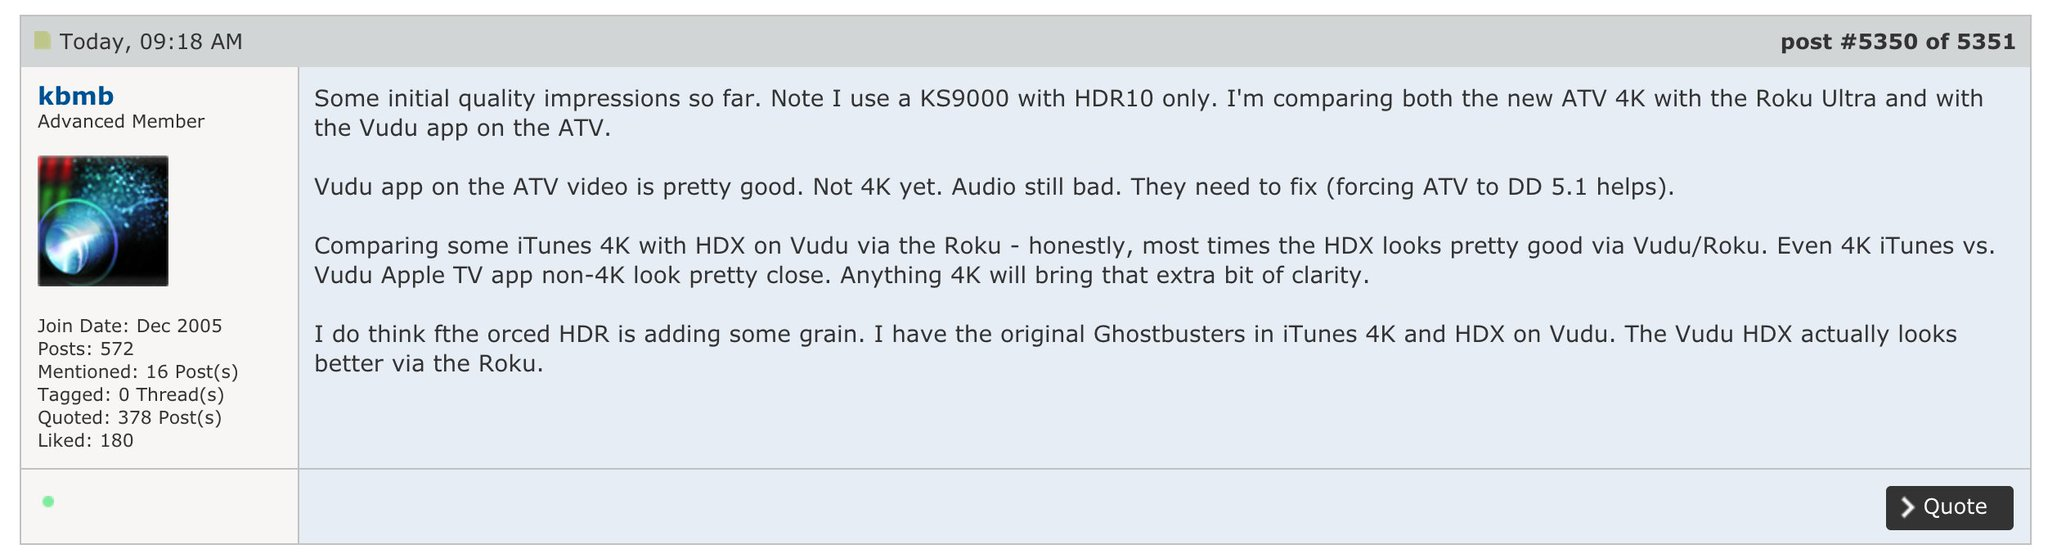 AVSForum members are starting to get their 4K Apple TVs: https://t.co/0gmSaJJK8Y https://t.co/ppMfiJ1nQT